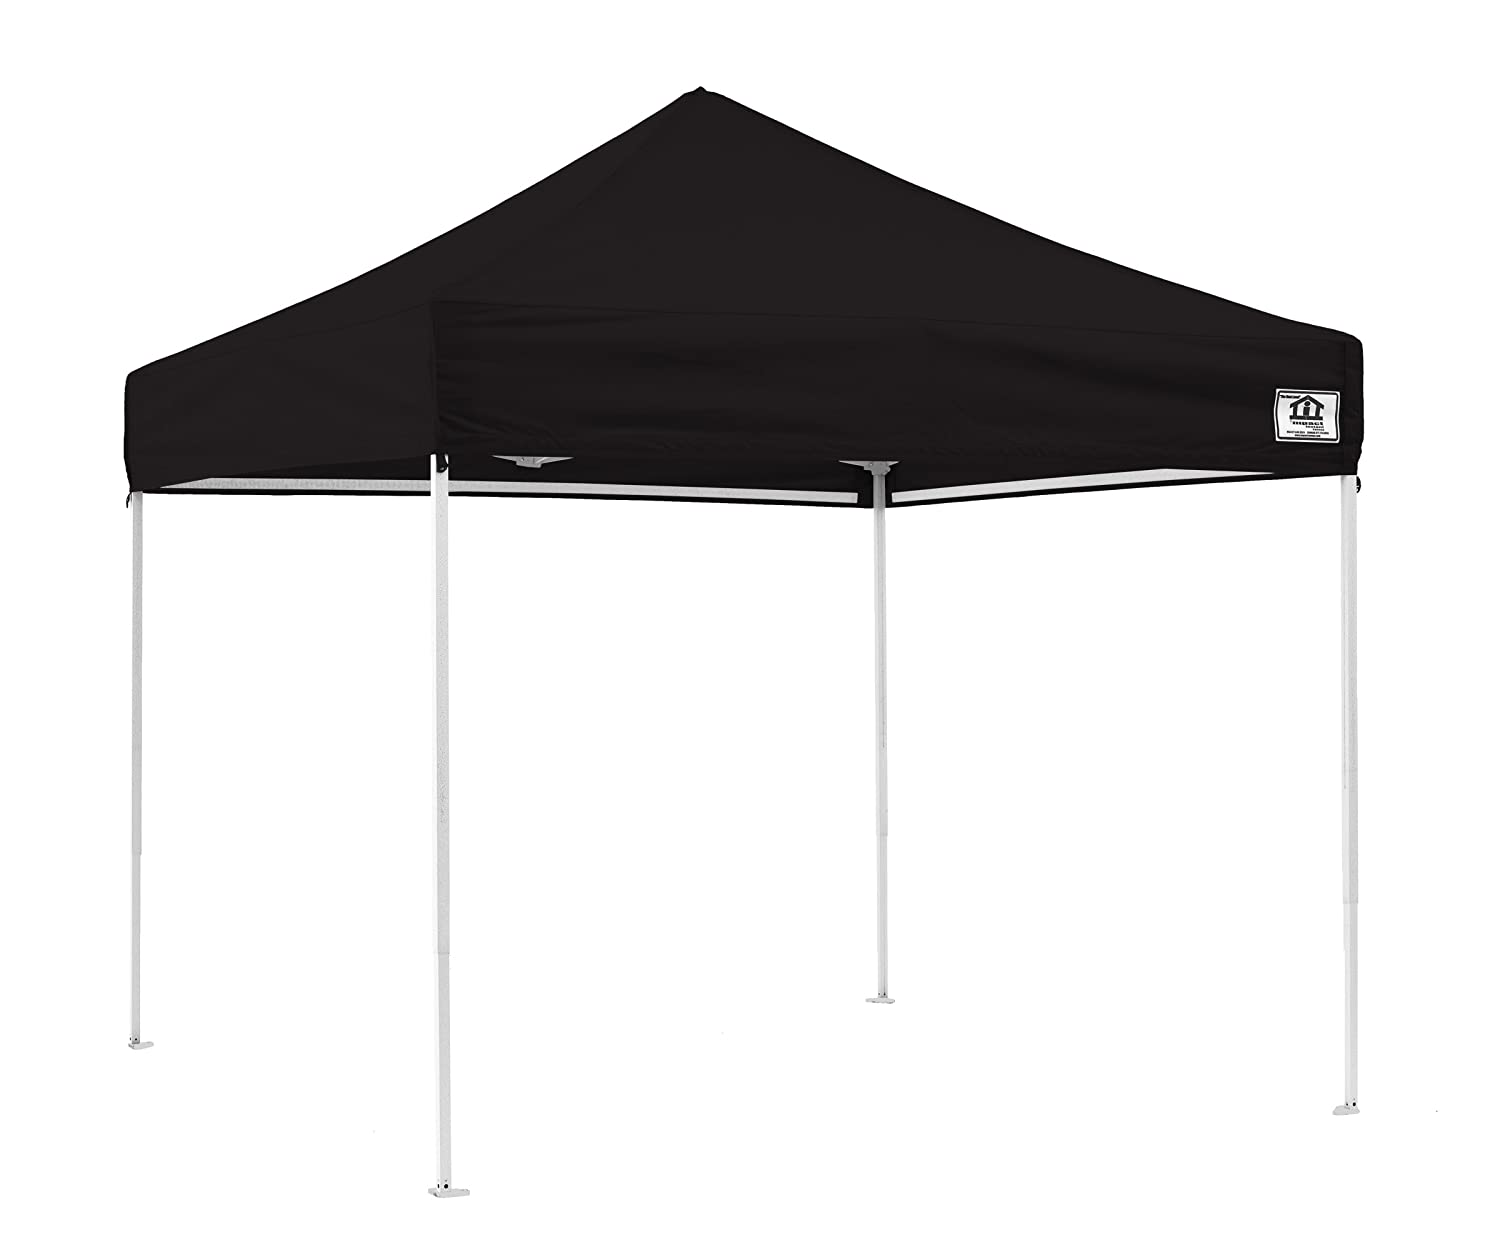 Amazon.com  Impact Canopy 10x10 EZ Pop Up Canopy Tent Portable Canopy with Roller Bag (Choose Color)  Outdoor Canopies  Garden u0026 Outdoor  sc 1 st  Amazon.com & Amazon.com : Impact Canopy 10x10 EZ Pop Up Canopy Tent Portable ...